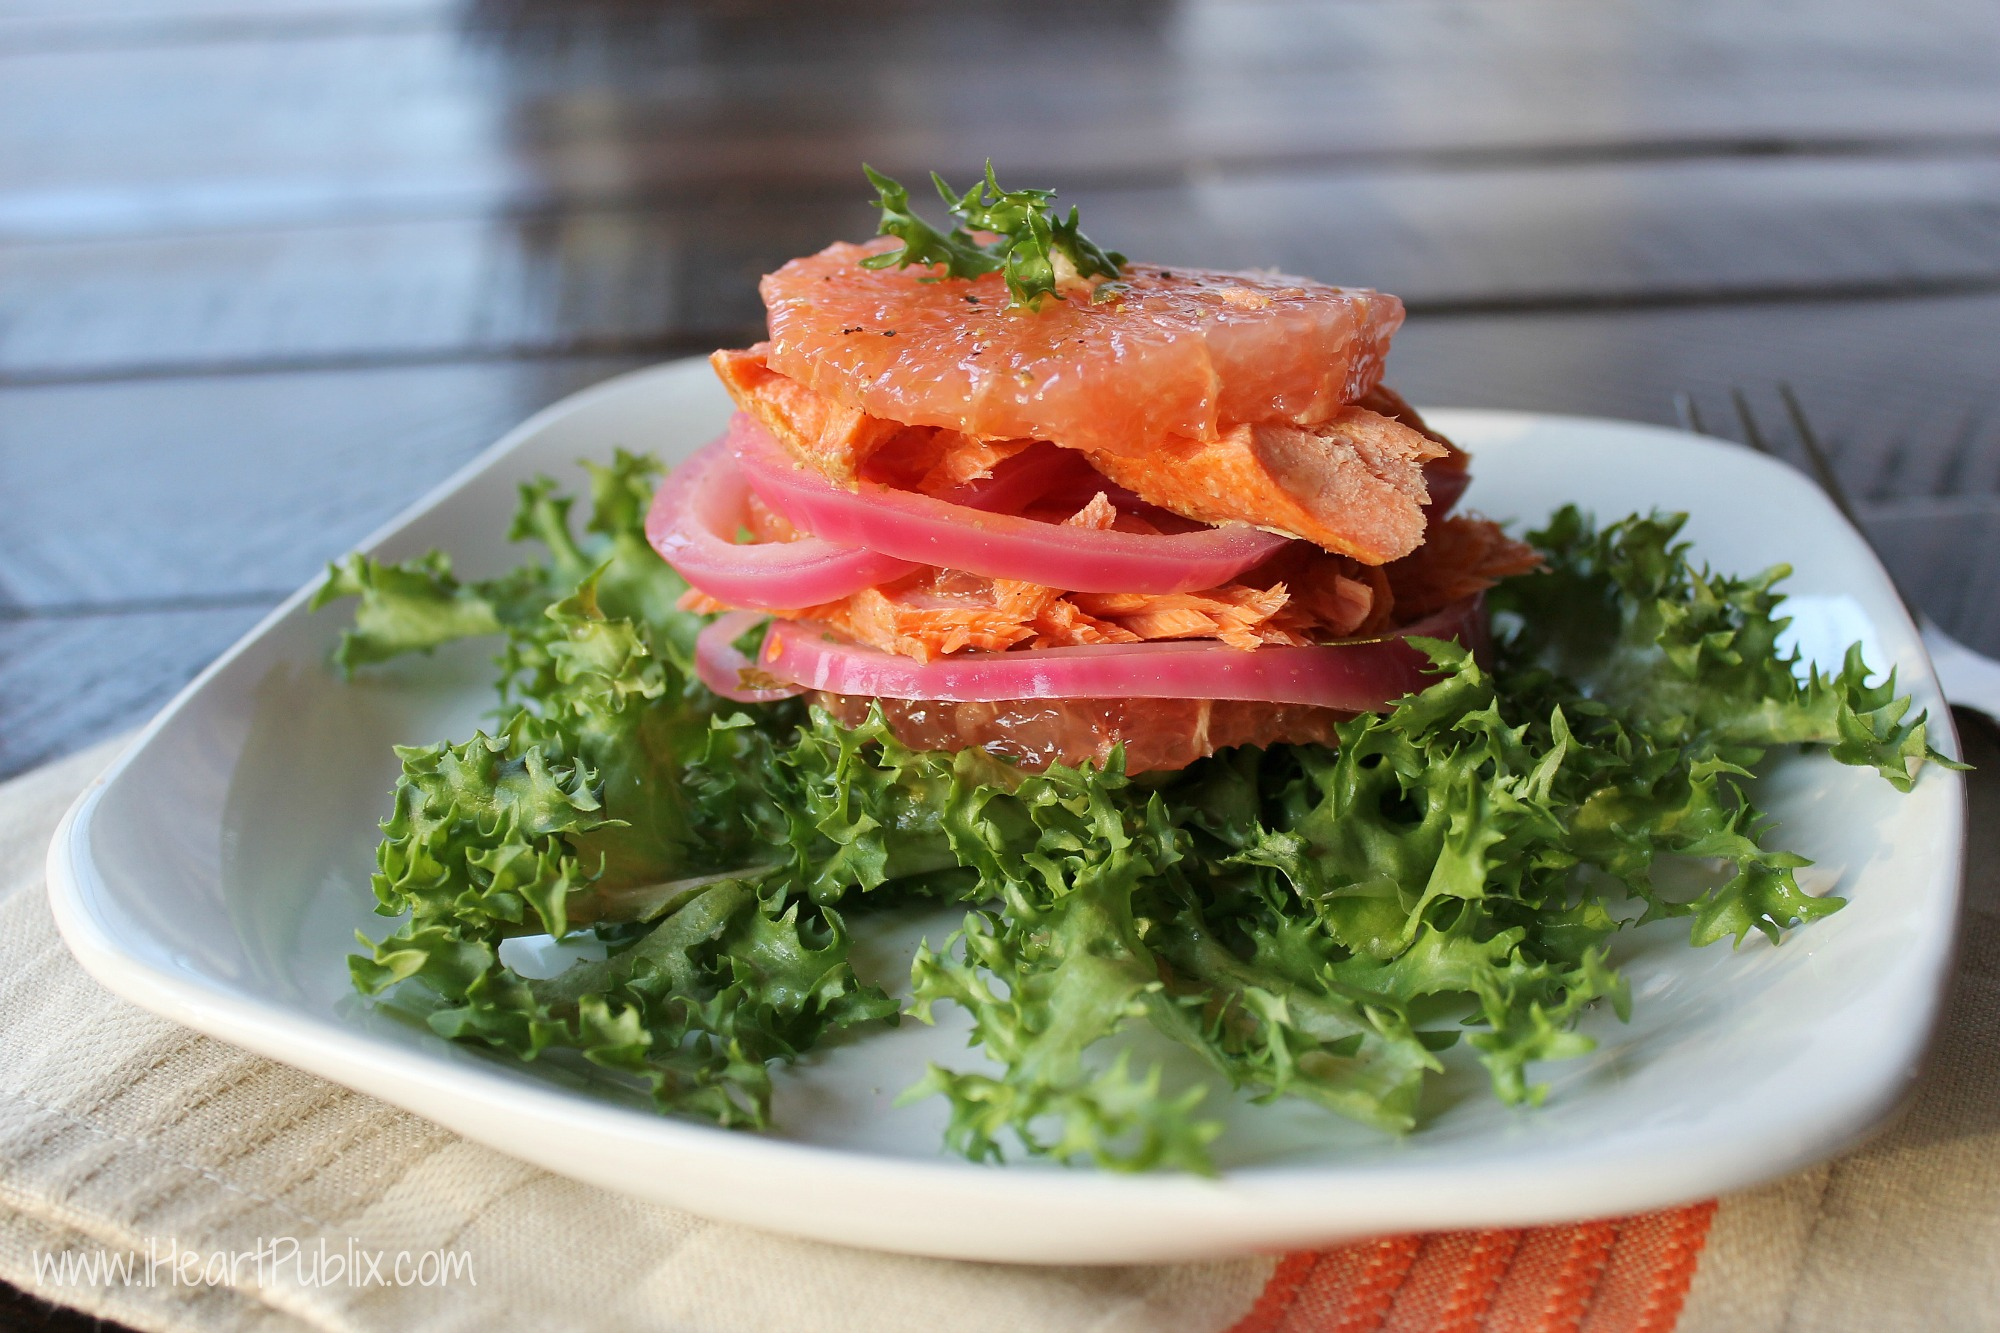 Florida Grapefruit And Smoked Salmon Tower With Pickled Red Onions